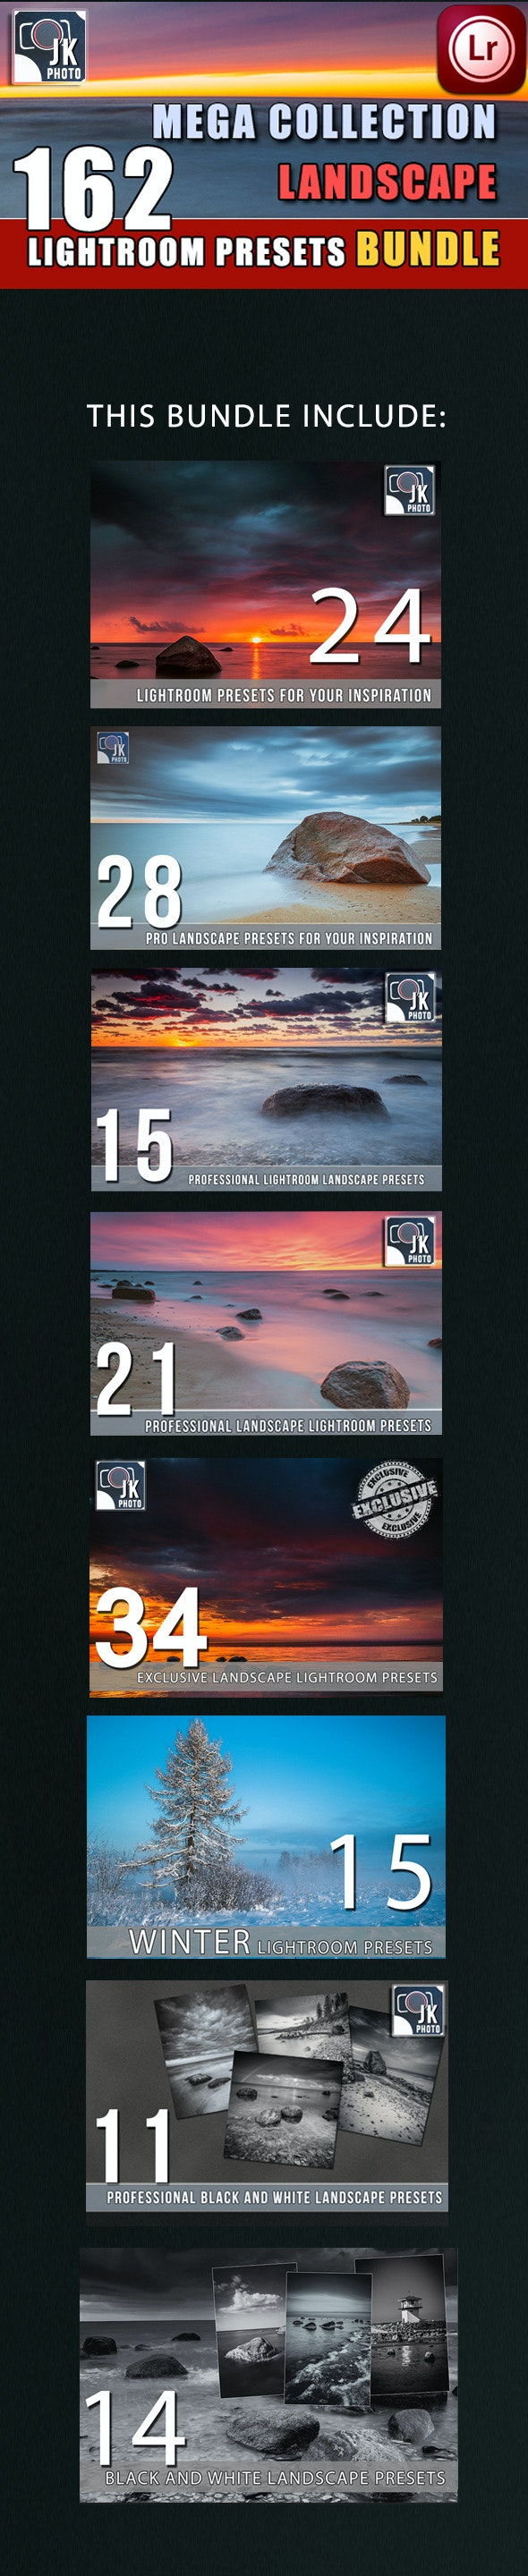 162 LightRoom Landscape Presets Bundle - Landscape Lightroom Presets